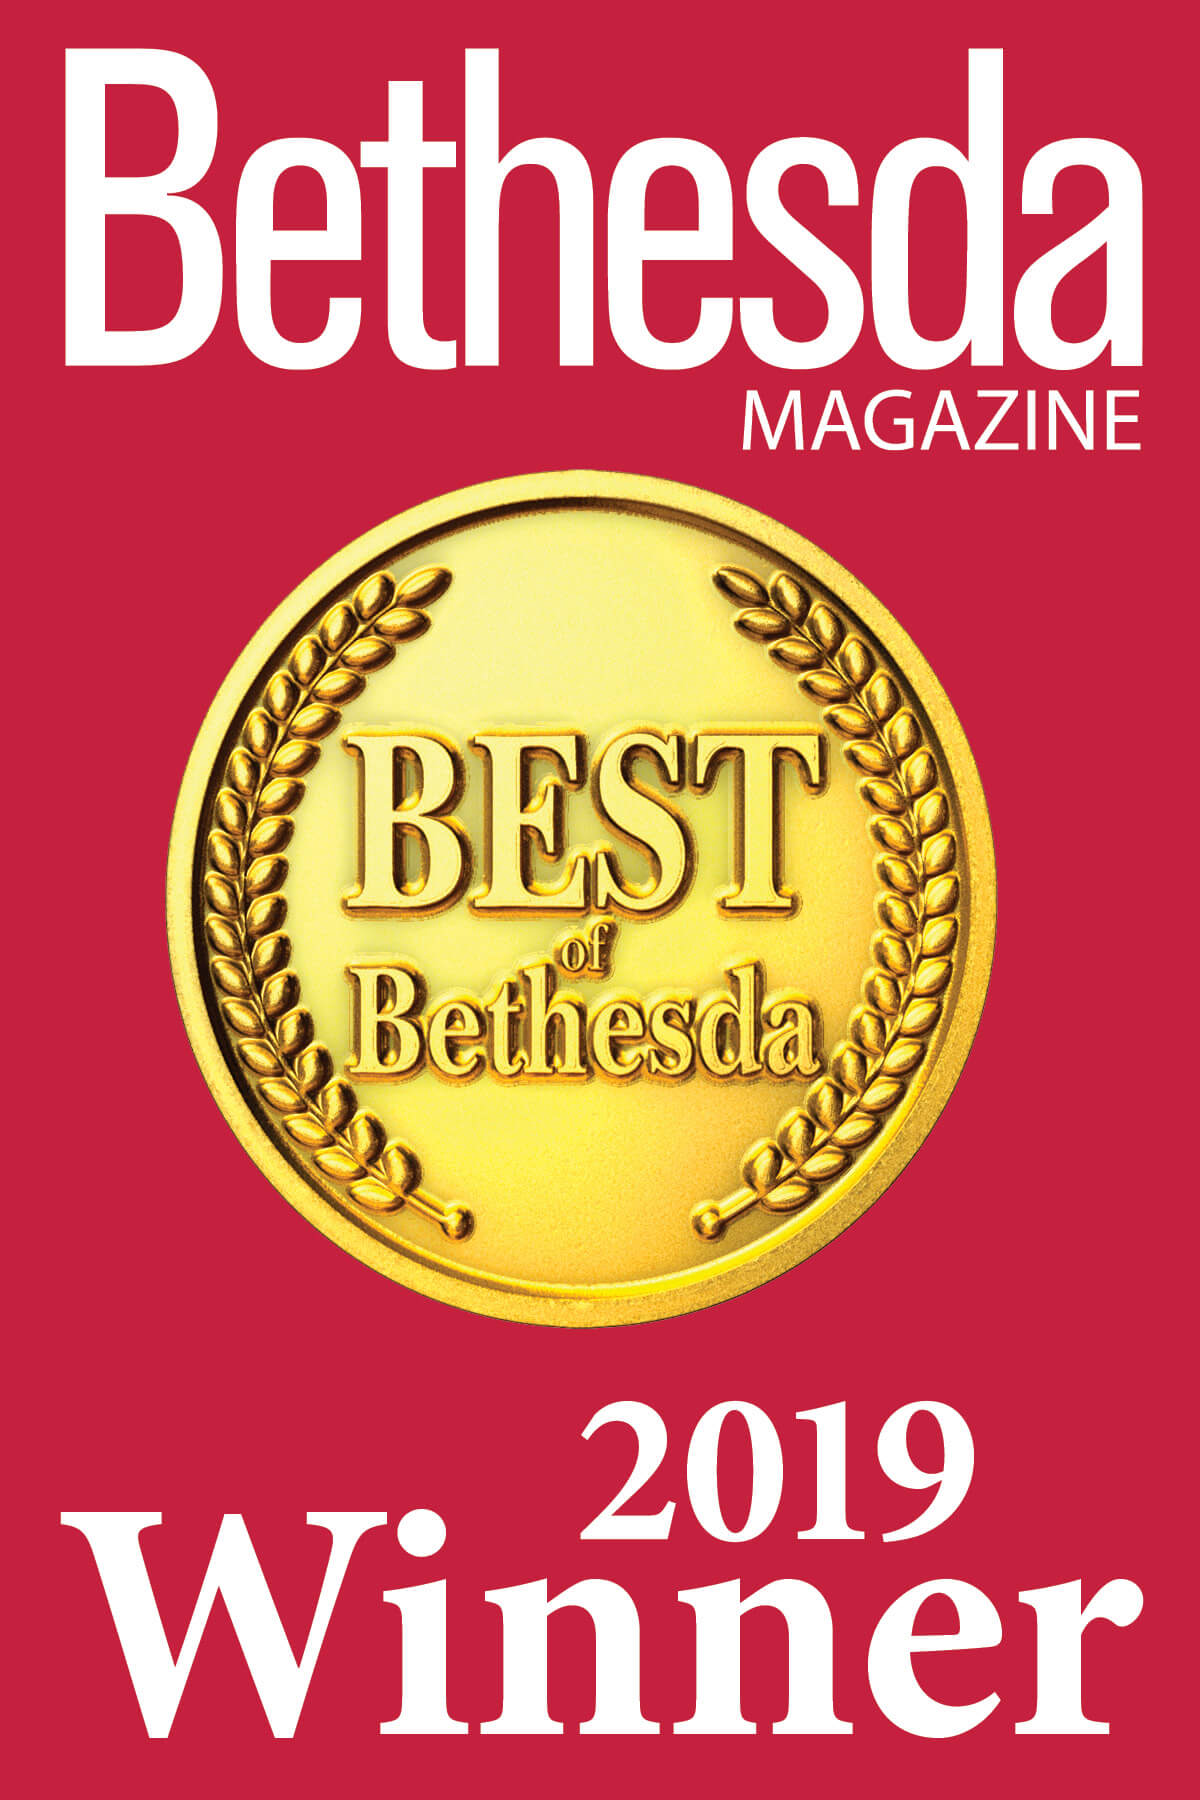 2019 Best of Bethesda - Sibley Best Hospital for Maternity